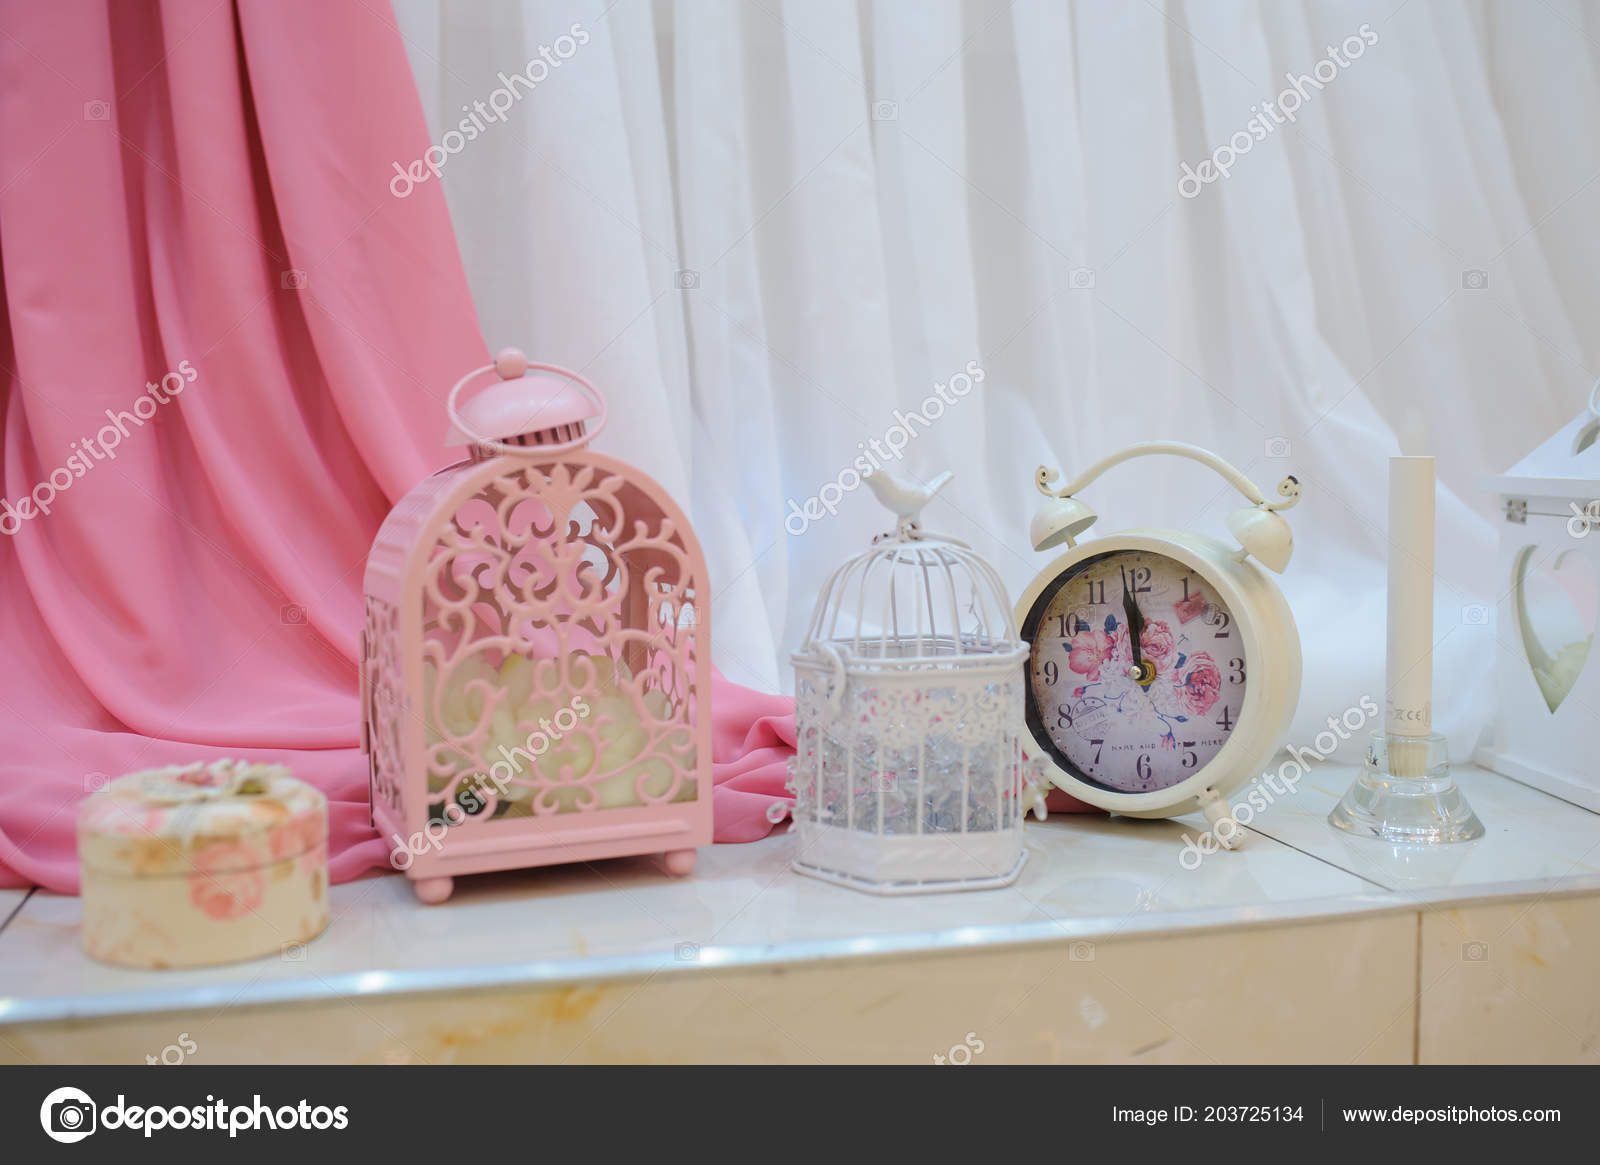 Wedding decoration pink elements watch bird cage candl stock photo wedding decoration pink elements watch bird cage candl fotografia de stock junglespirit Image collections